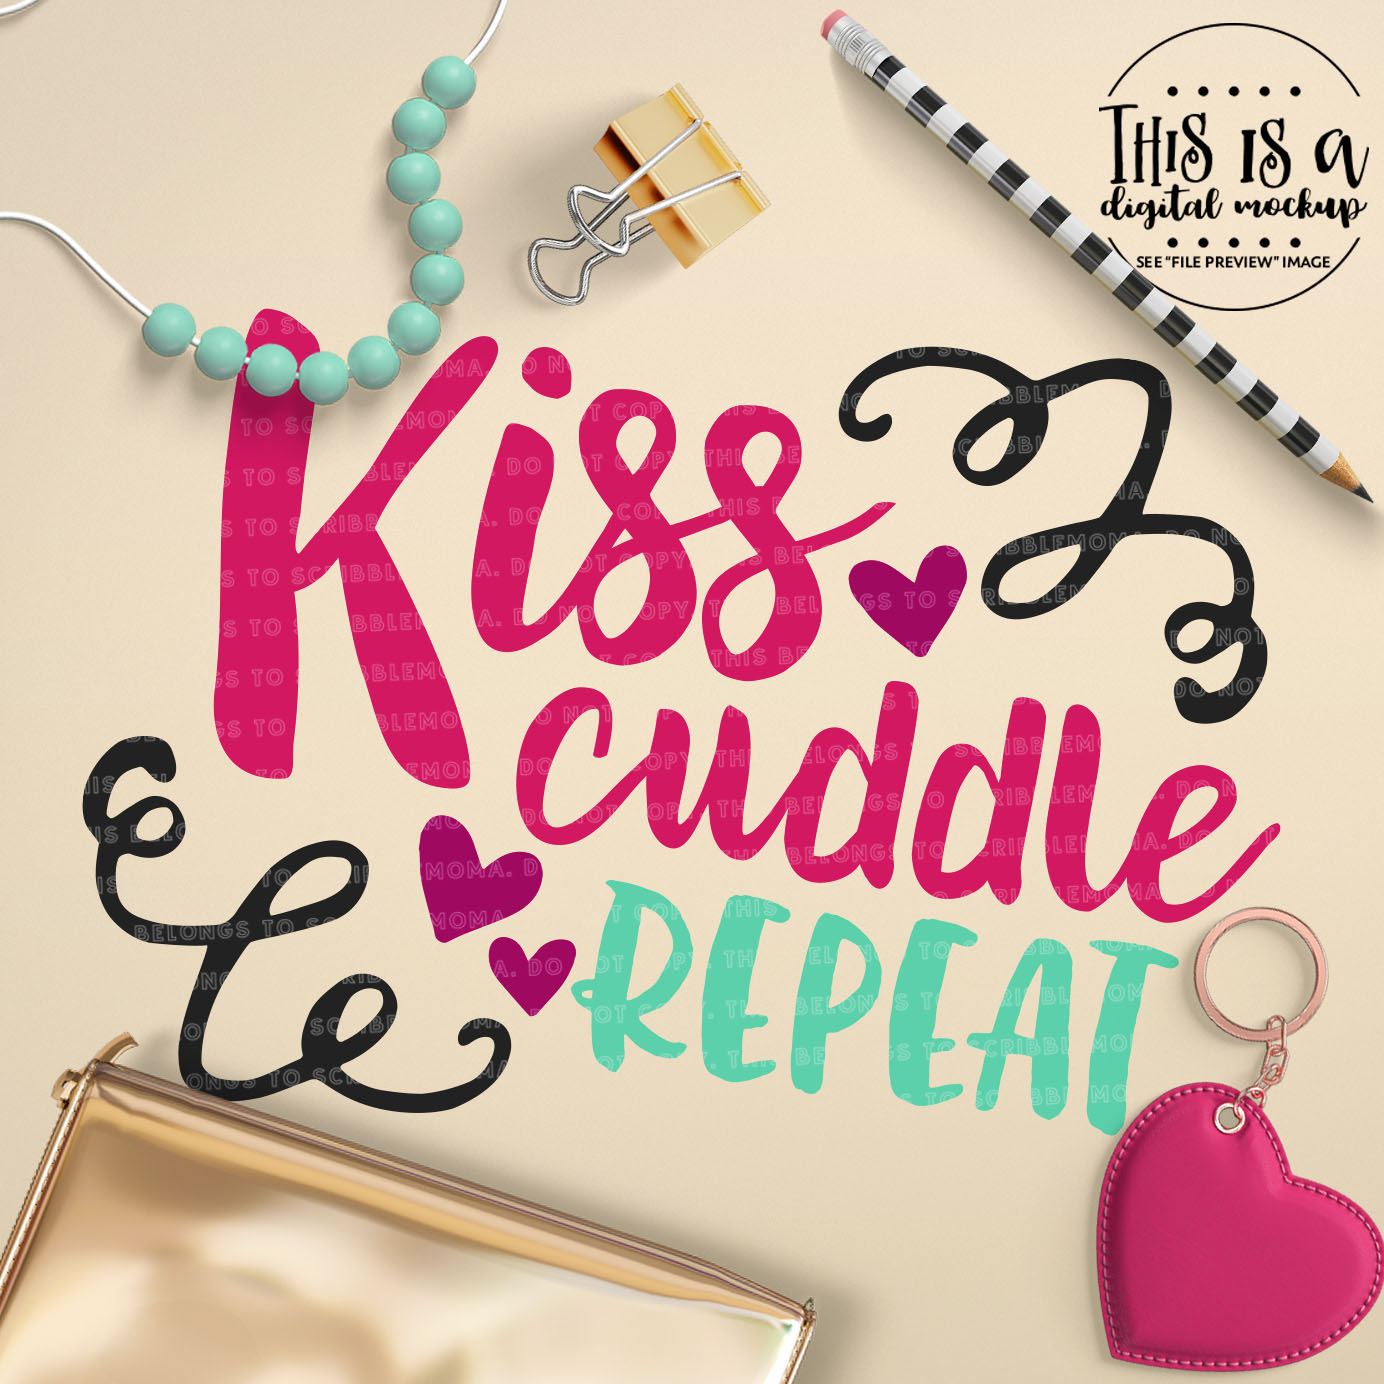 Cuddle svg #10, Download drawings